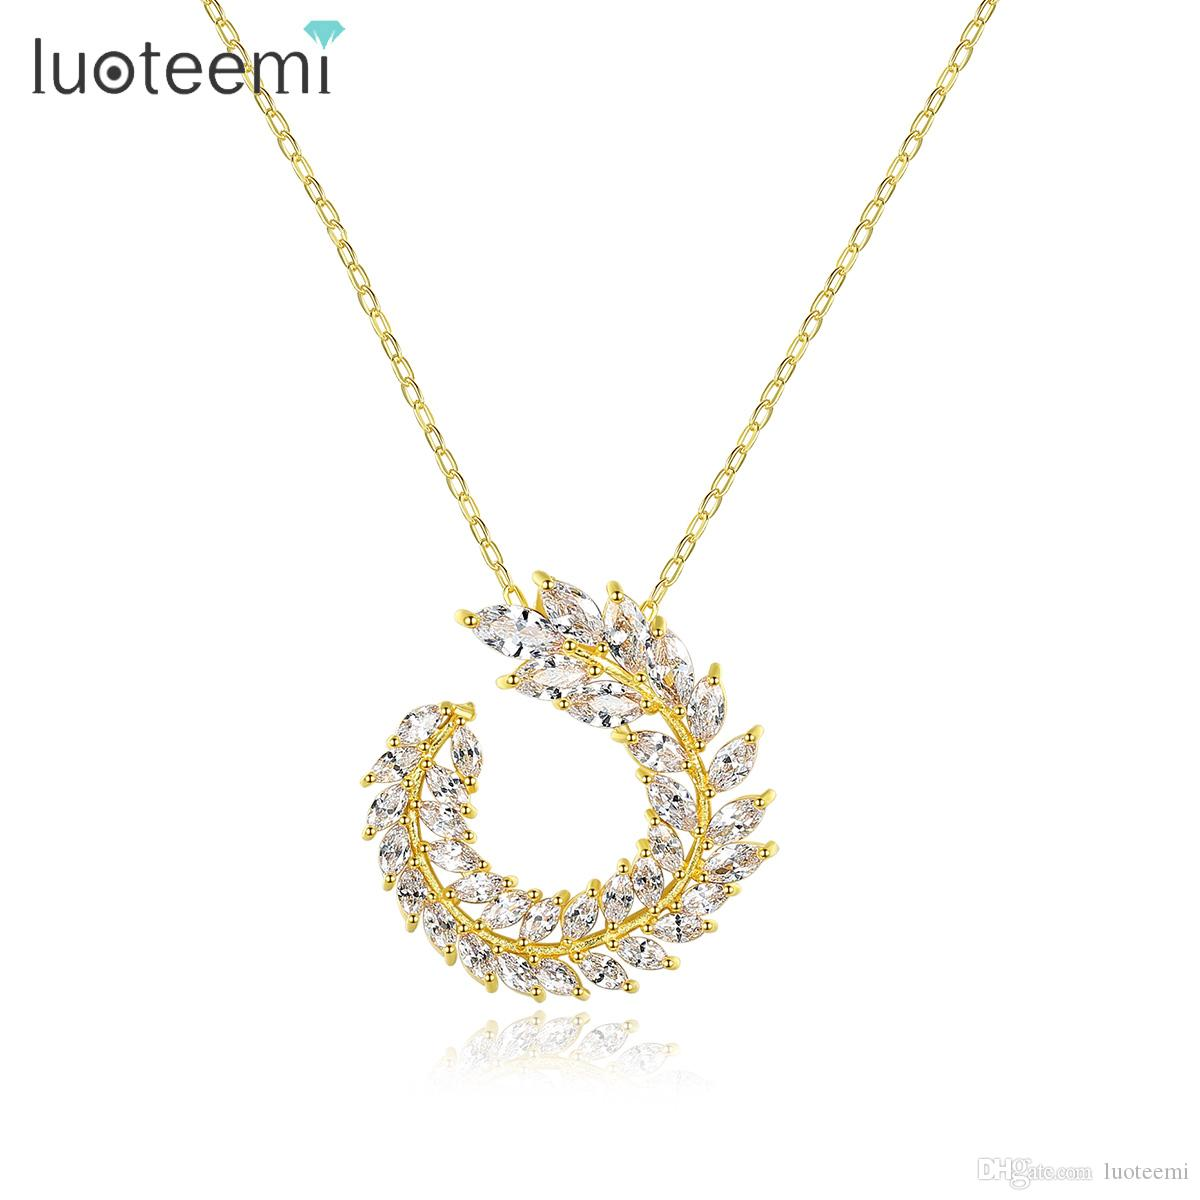 Wholesale LUOTEEMI New Design Leaf Necklace For Women Wedding Party Paved  CZ Exquisite Silver Gold Fashion Jewelry Korean Christmas Gift Silver  Pendant ... 967021a39d7b